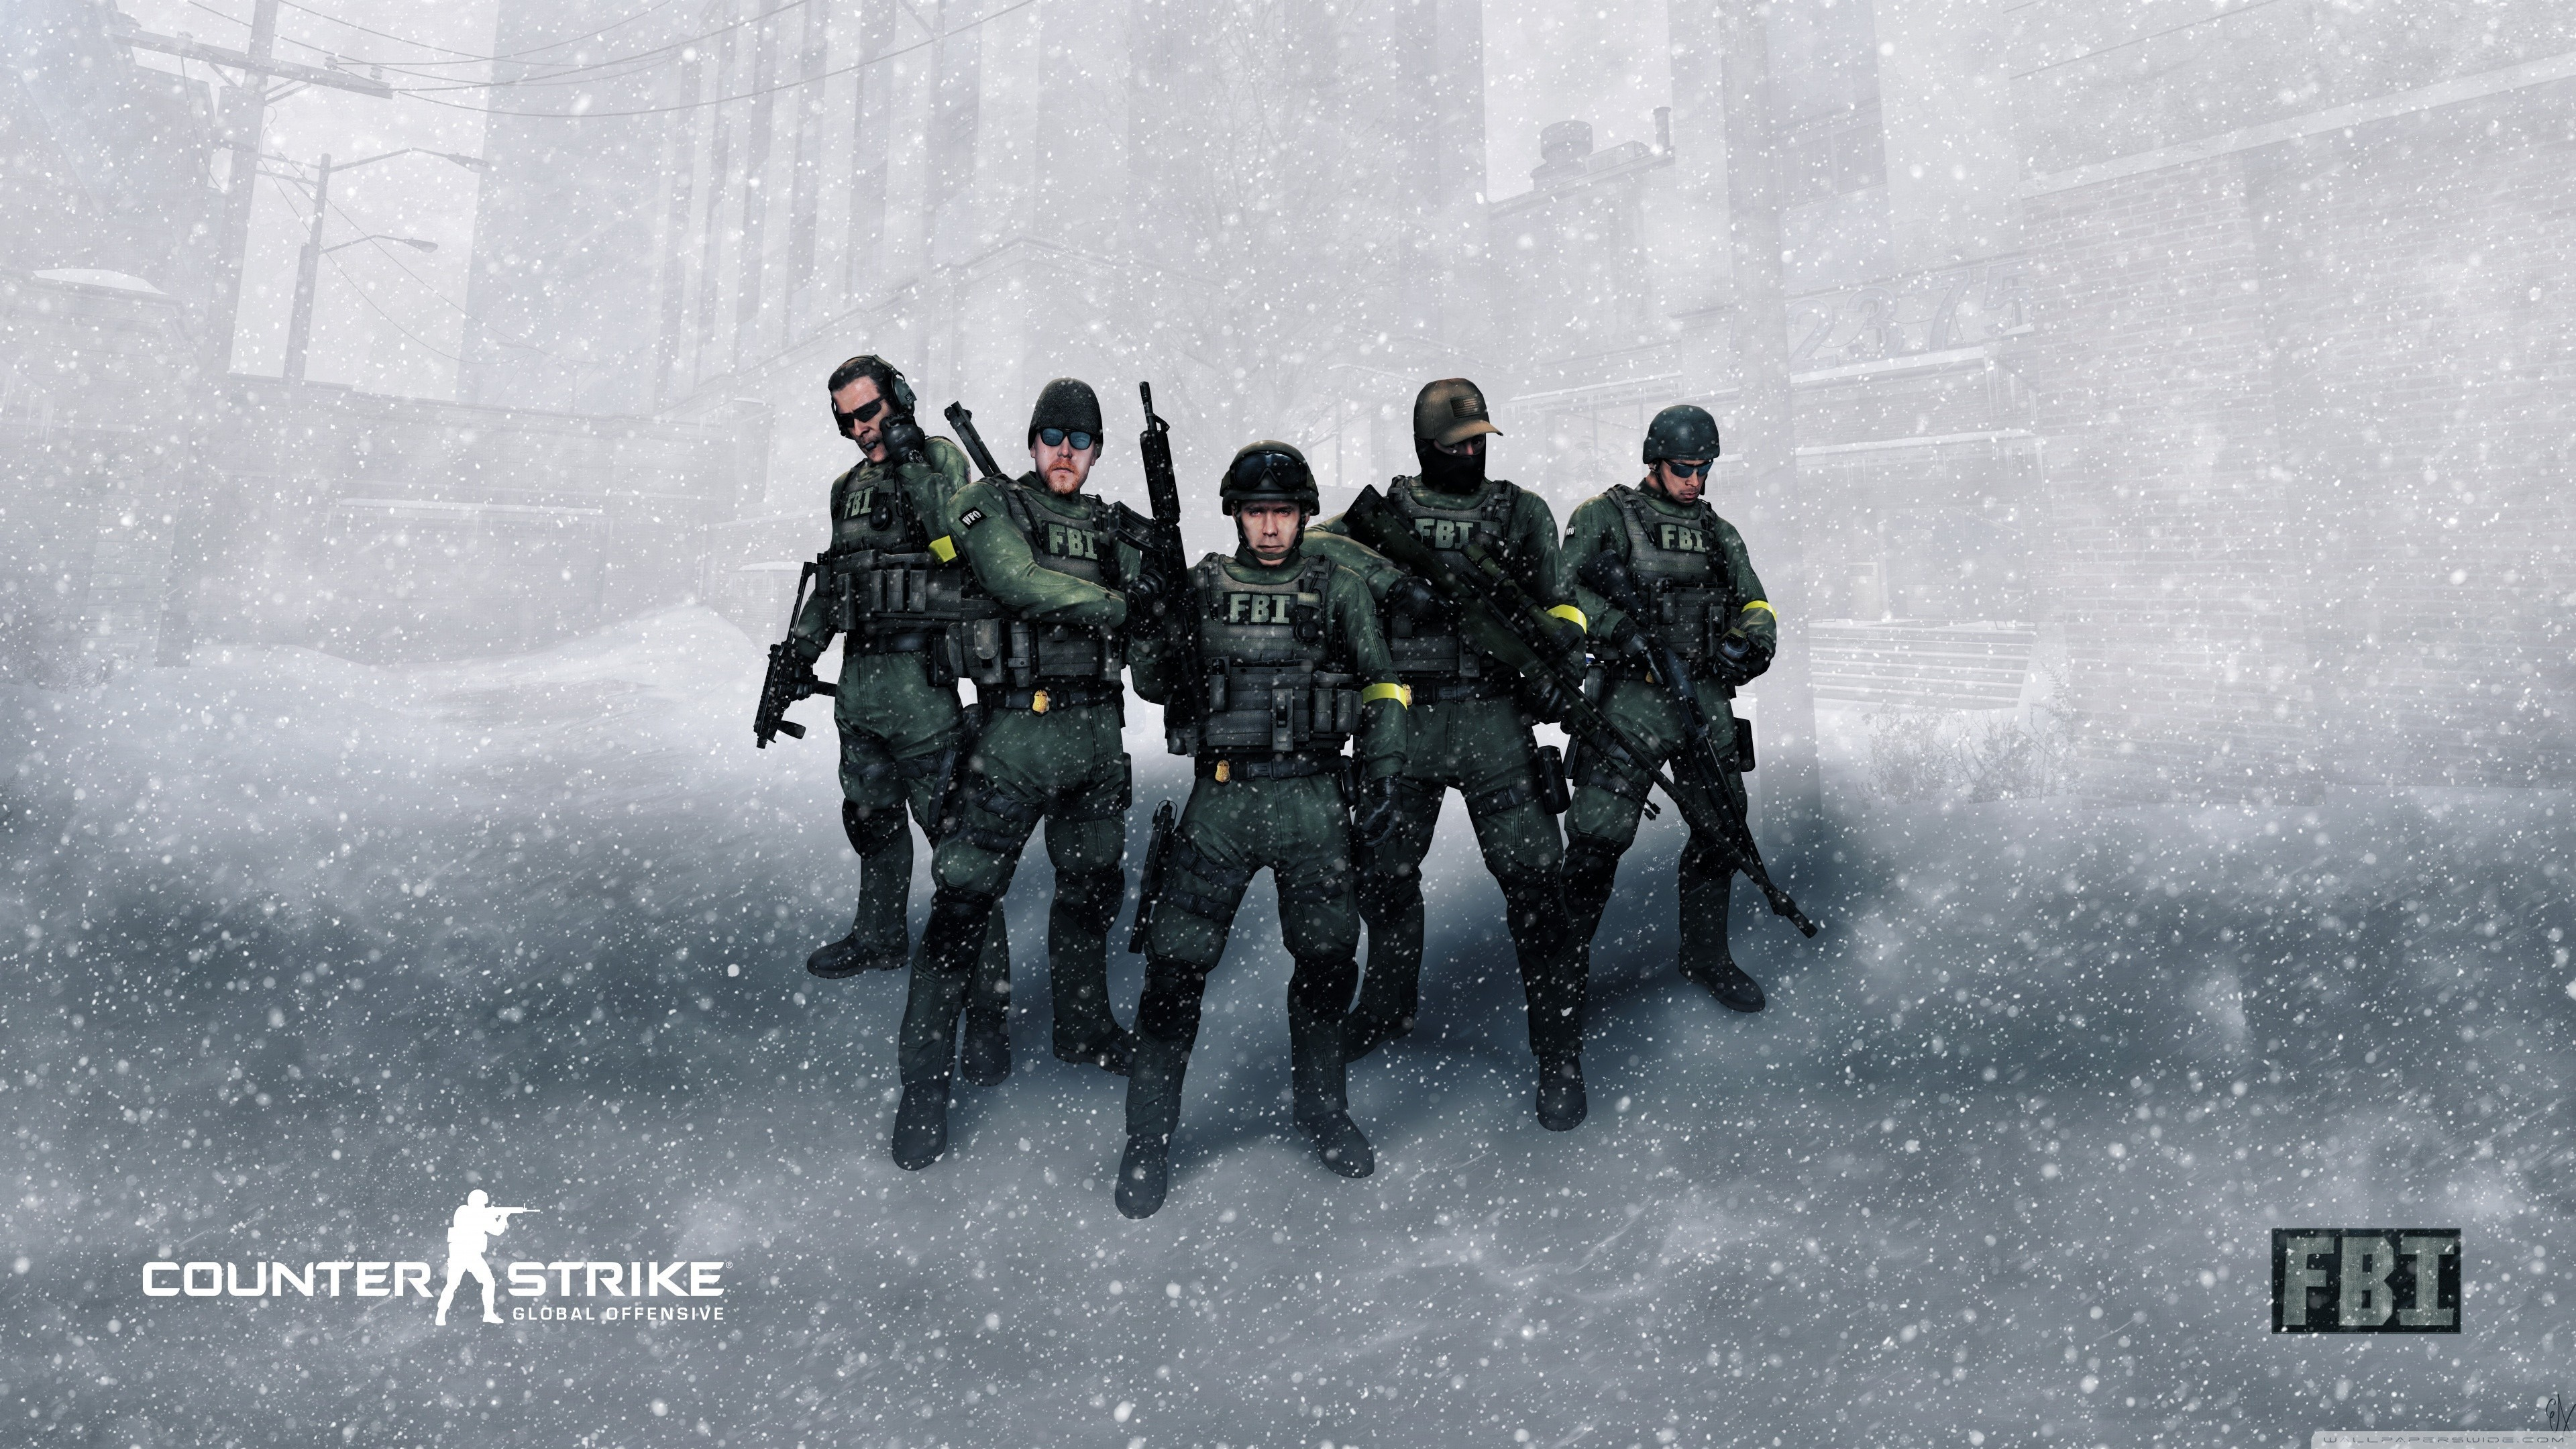 Res: 3840x2160, Counter Strike soldier Wallpaper New Swat Team Wallpaper 67 Images Of  Counter Strike soldier Wallpaper Lovely